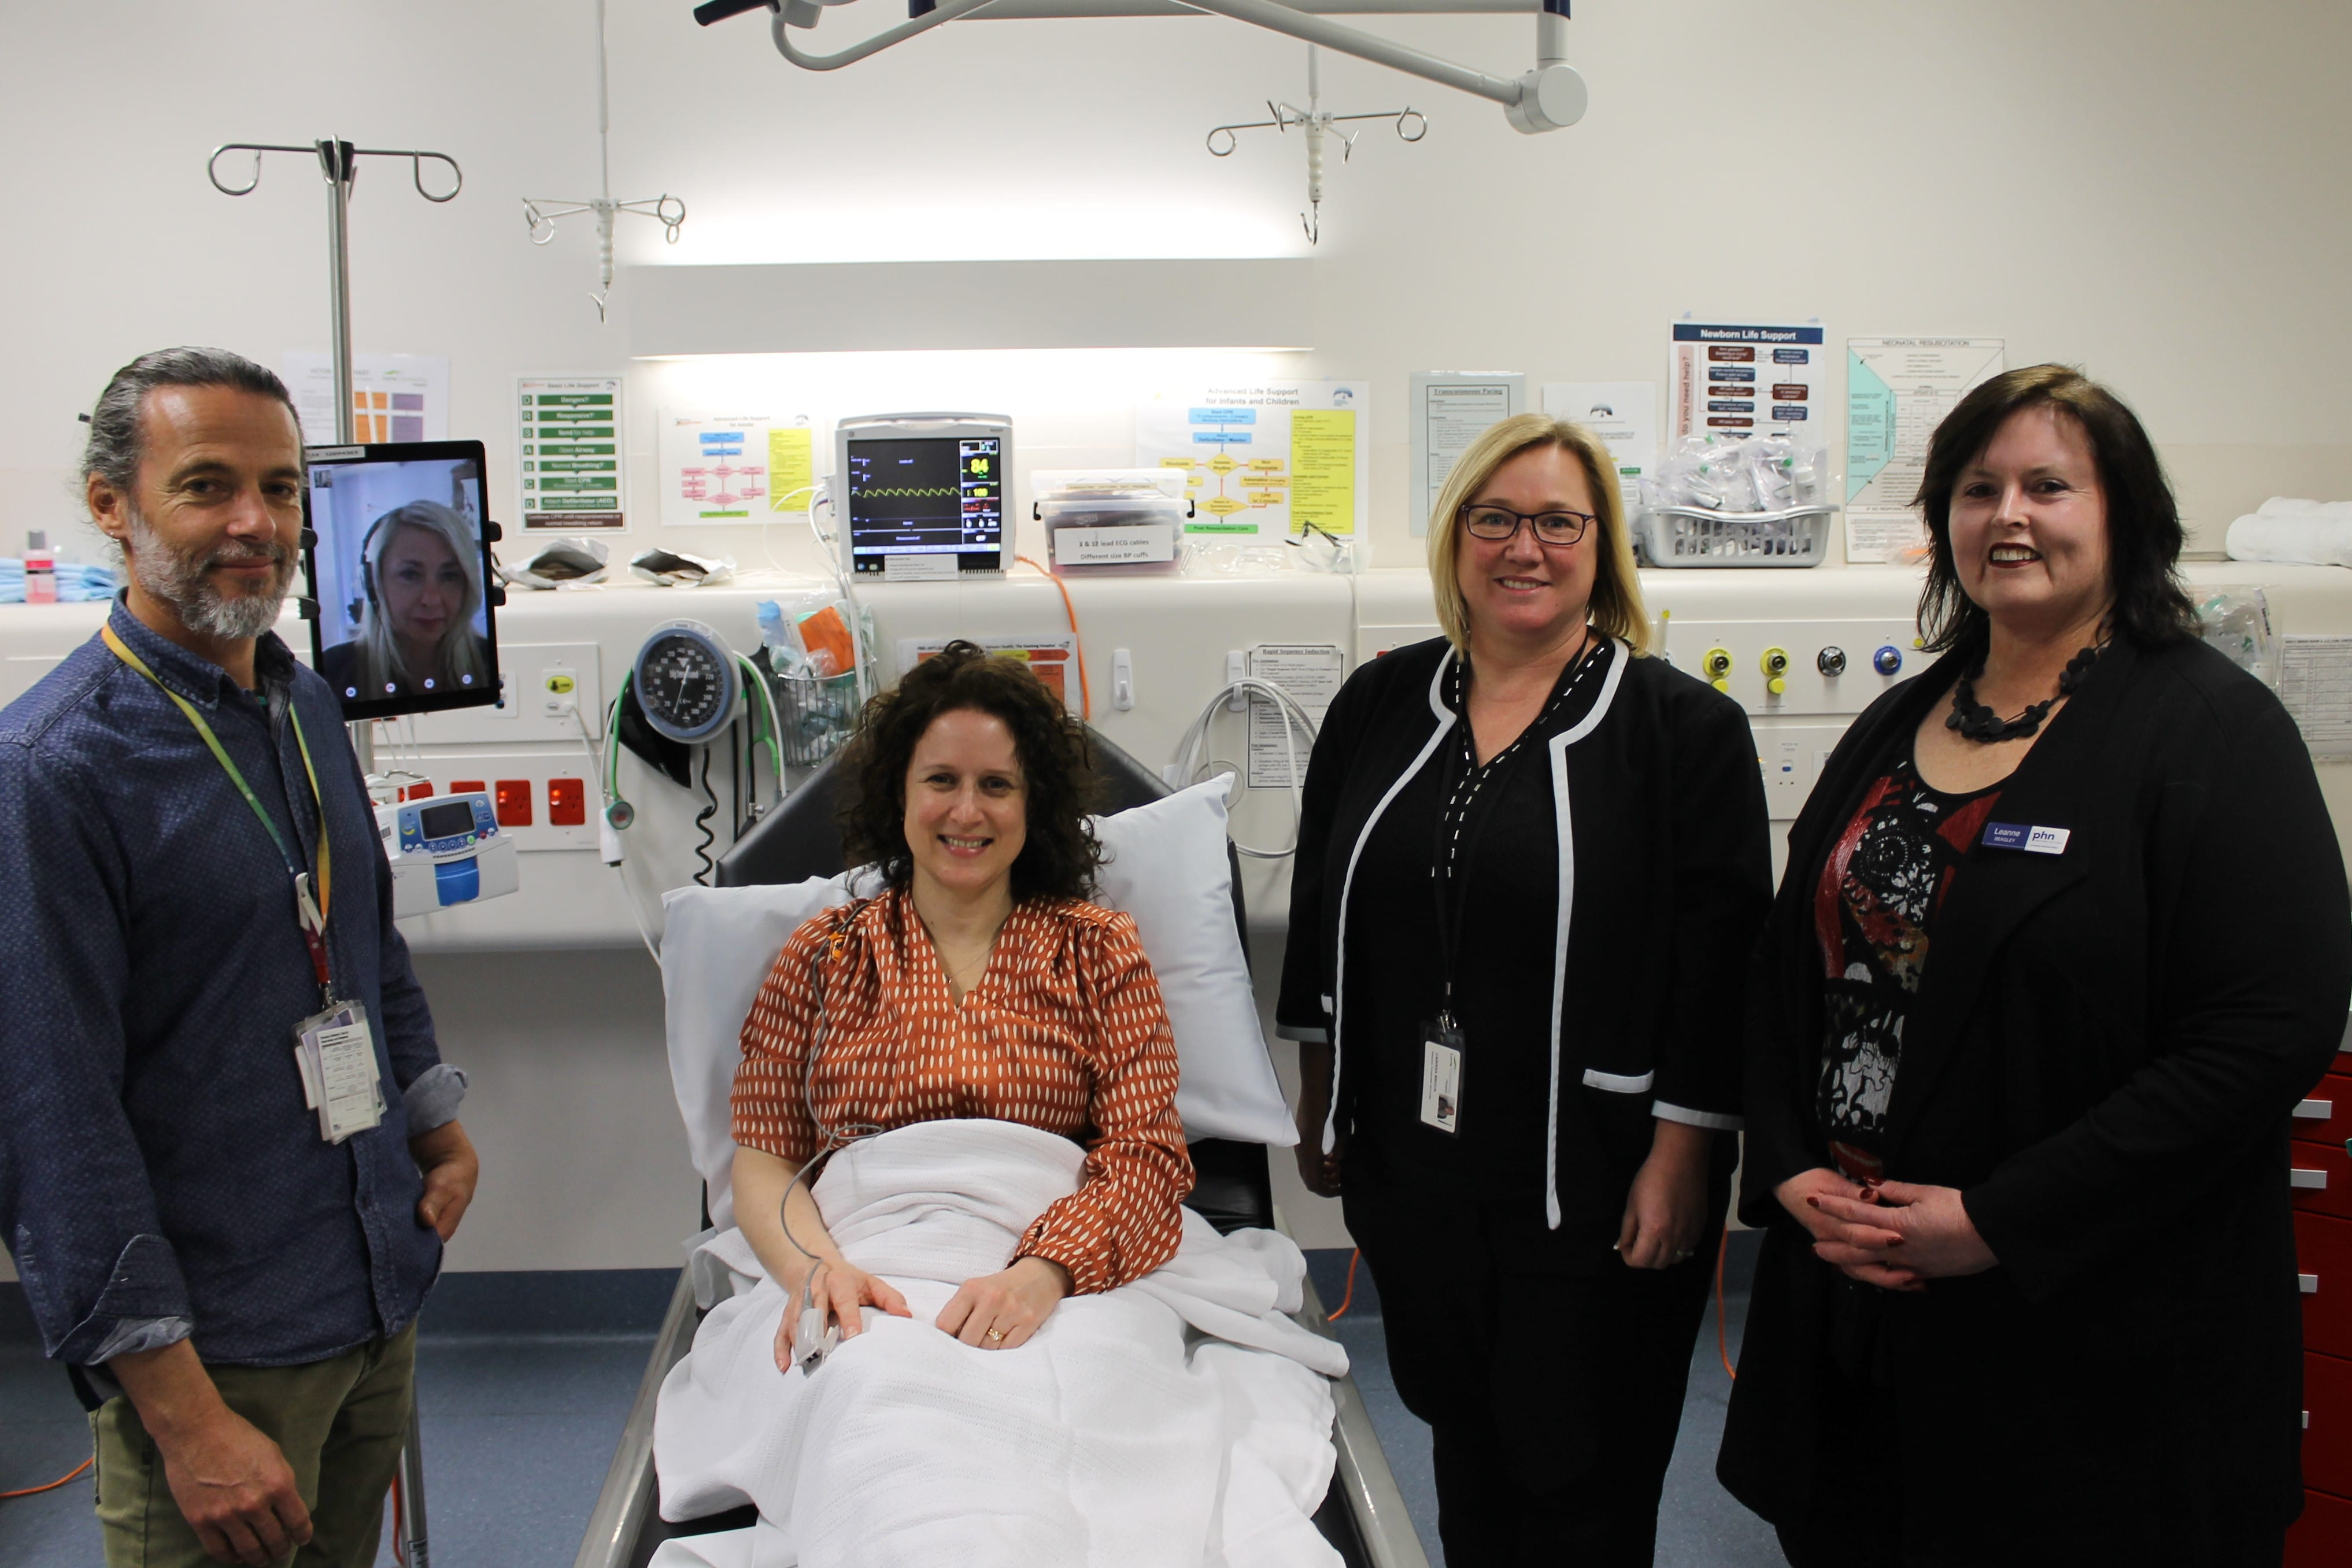 Acute Nurse Unit Manager, Jason Phieler, Great Ocean Road Health Acting CEO, Carissa Brock and Western Victoria PHN CEO, Dr Leanne Beagley, at the Lorne Community Hospital Urgent Care Centre launching an After Hours Telehealth Pilot.